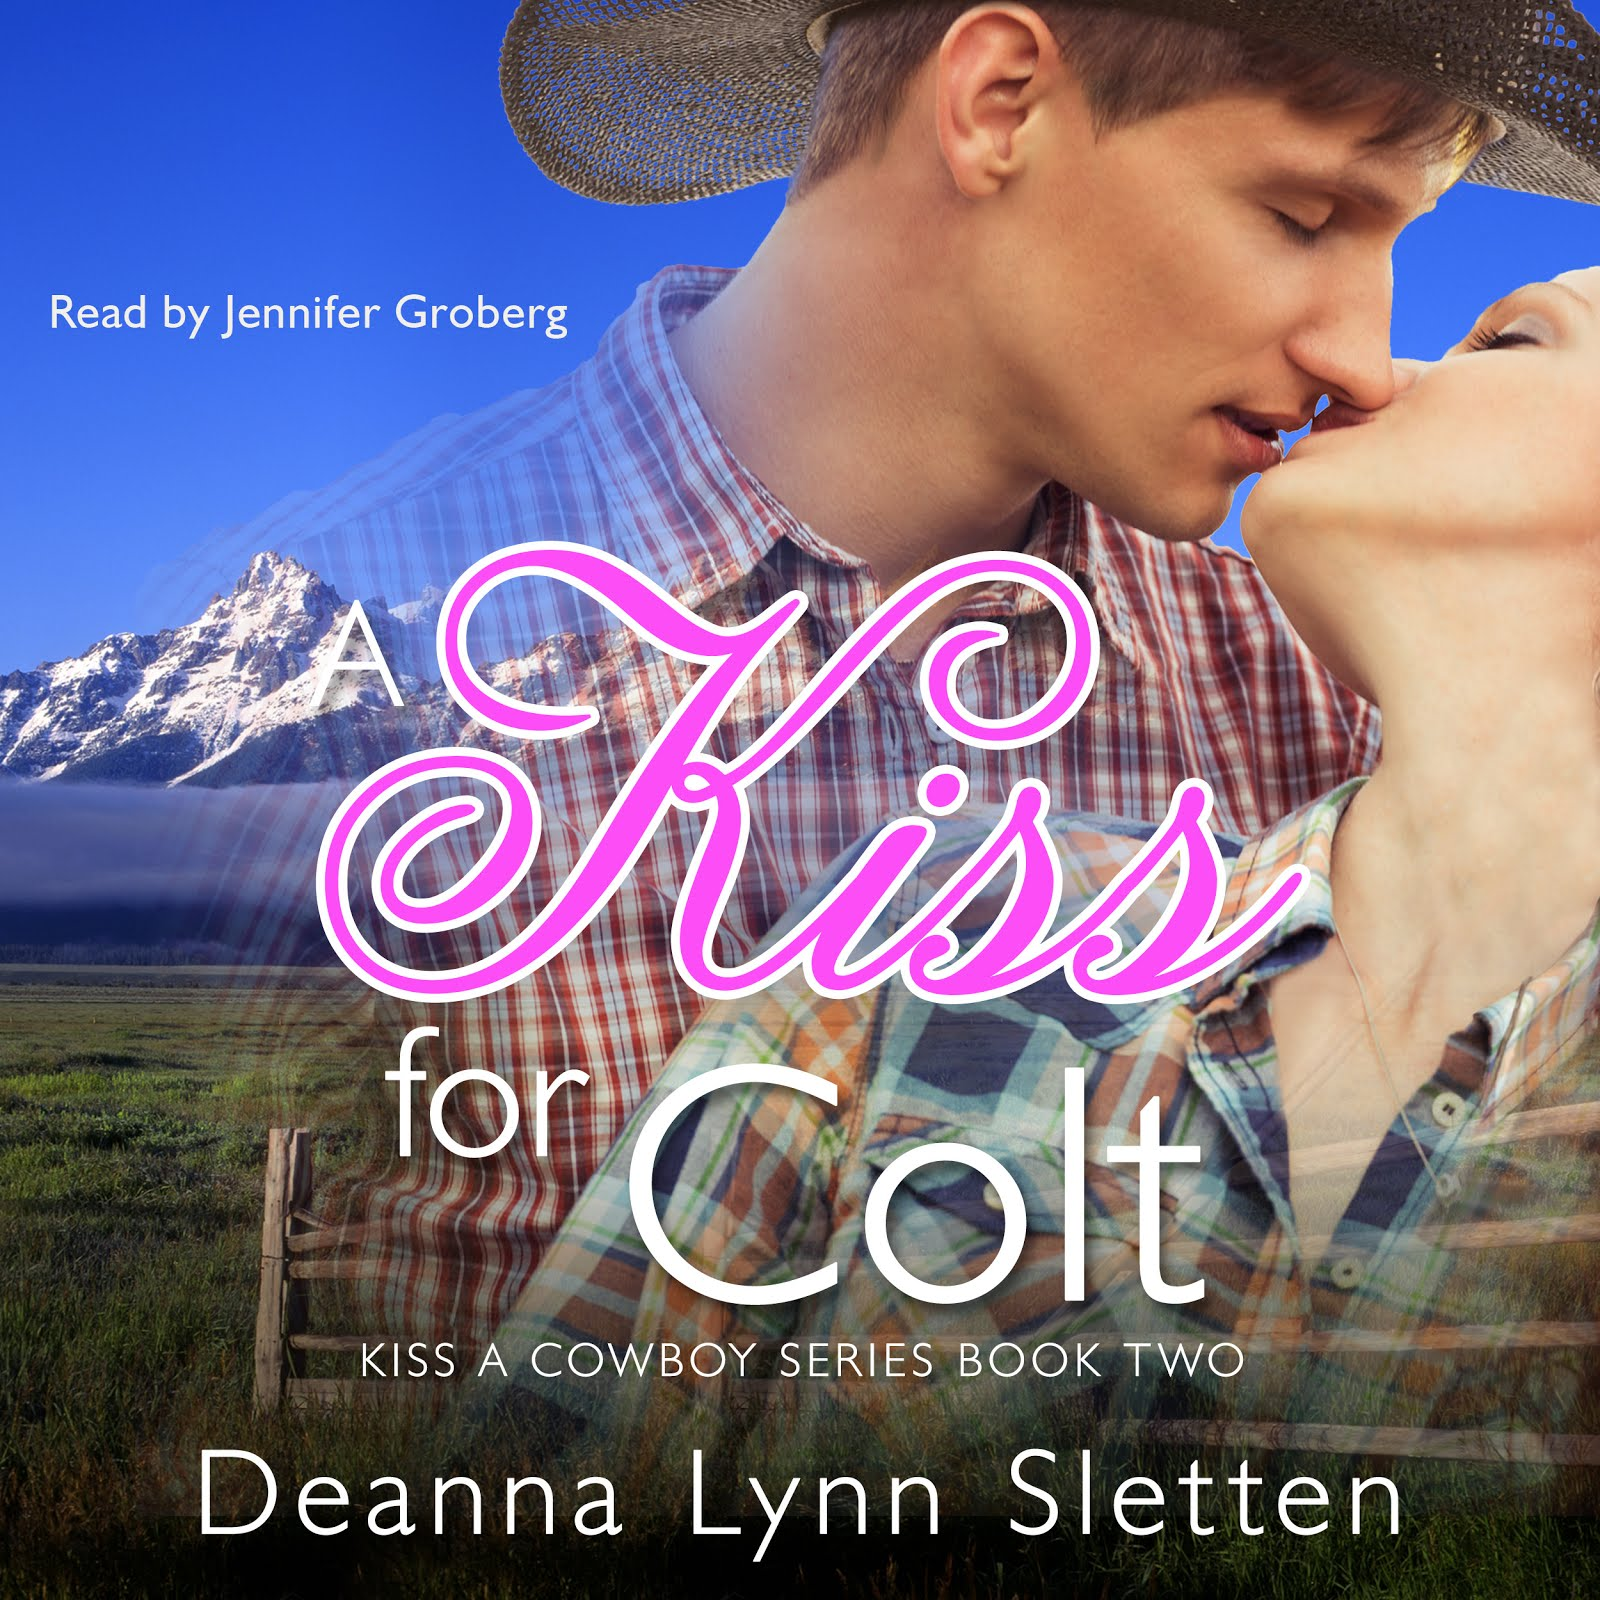 A Kiss for Colt on Audiobook